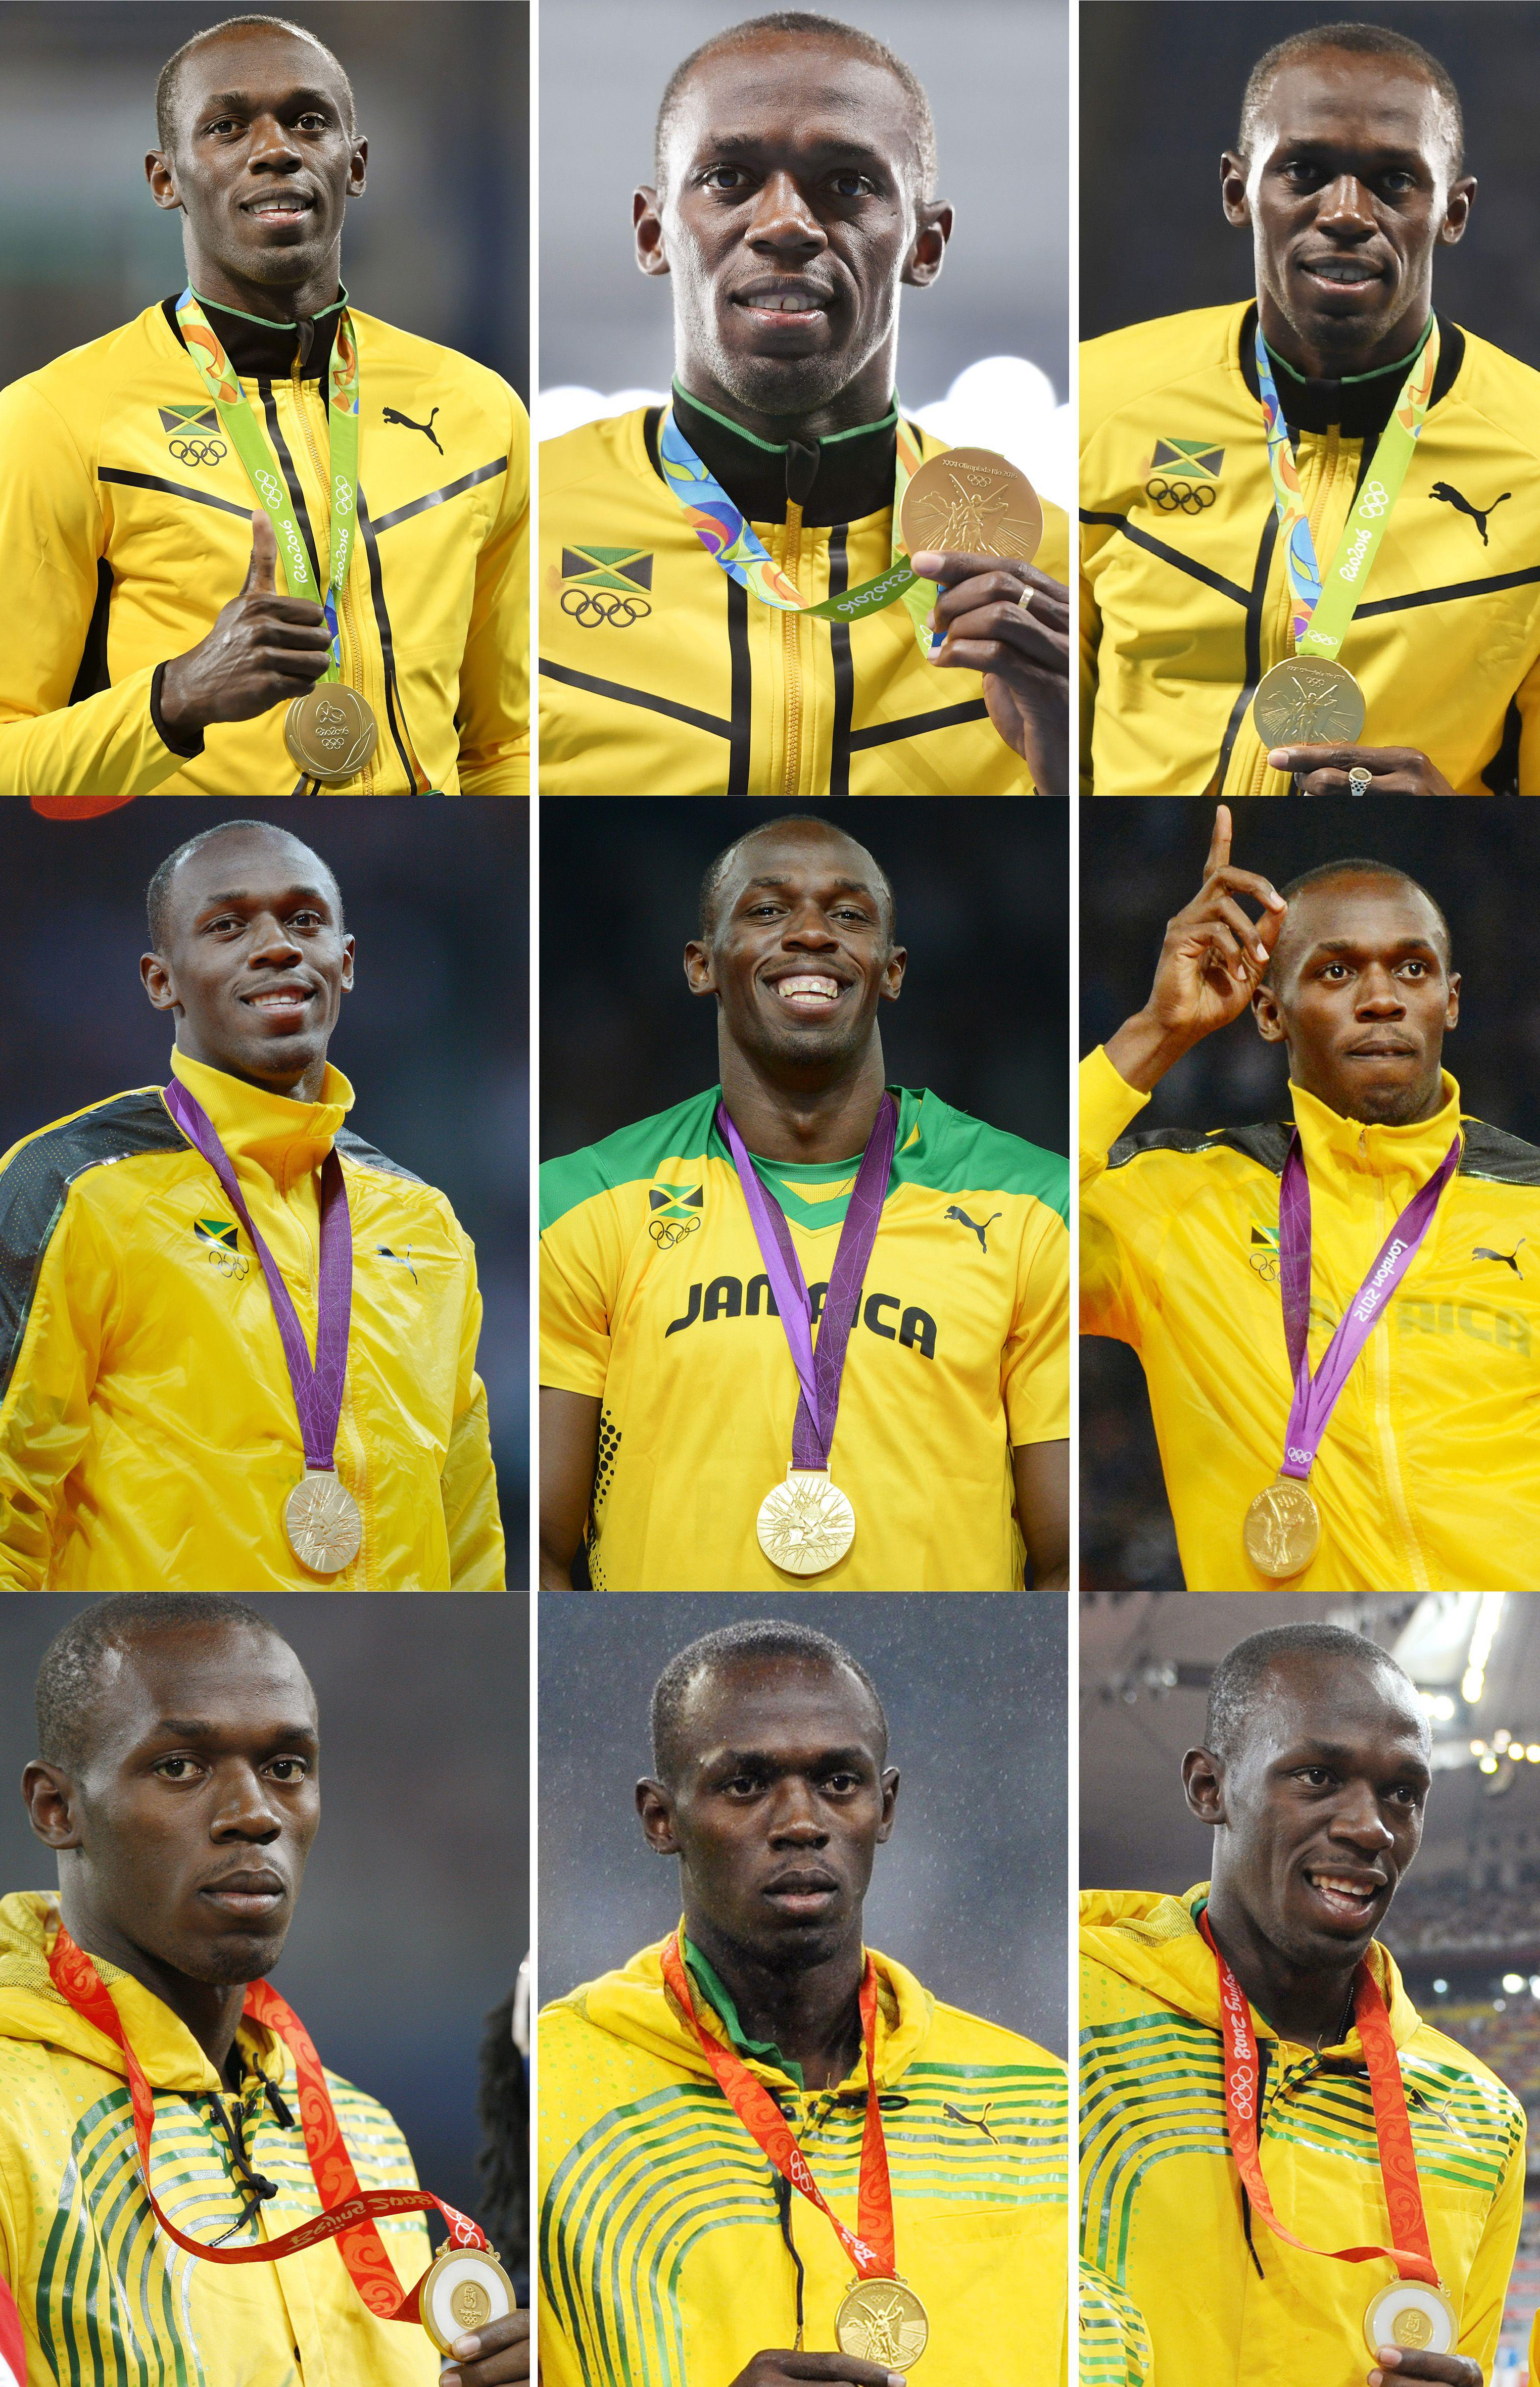 A combination of nine pictures made on August 20, 2016 shows Jamaica's sprinter Usain Bolt posing with his gold Olympic medals